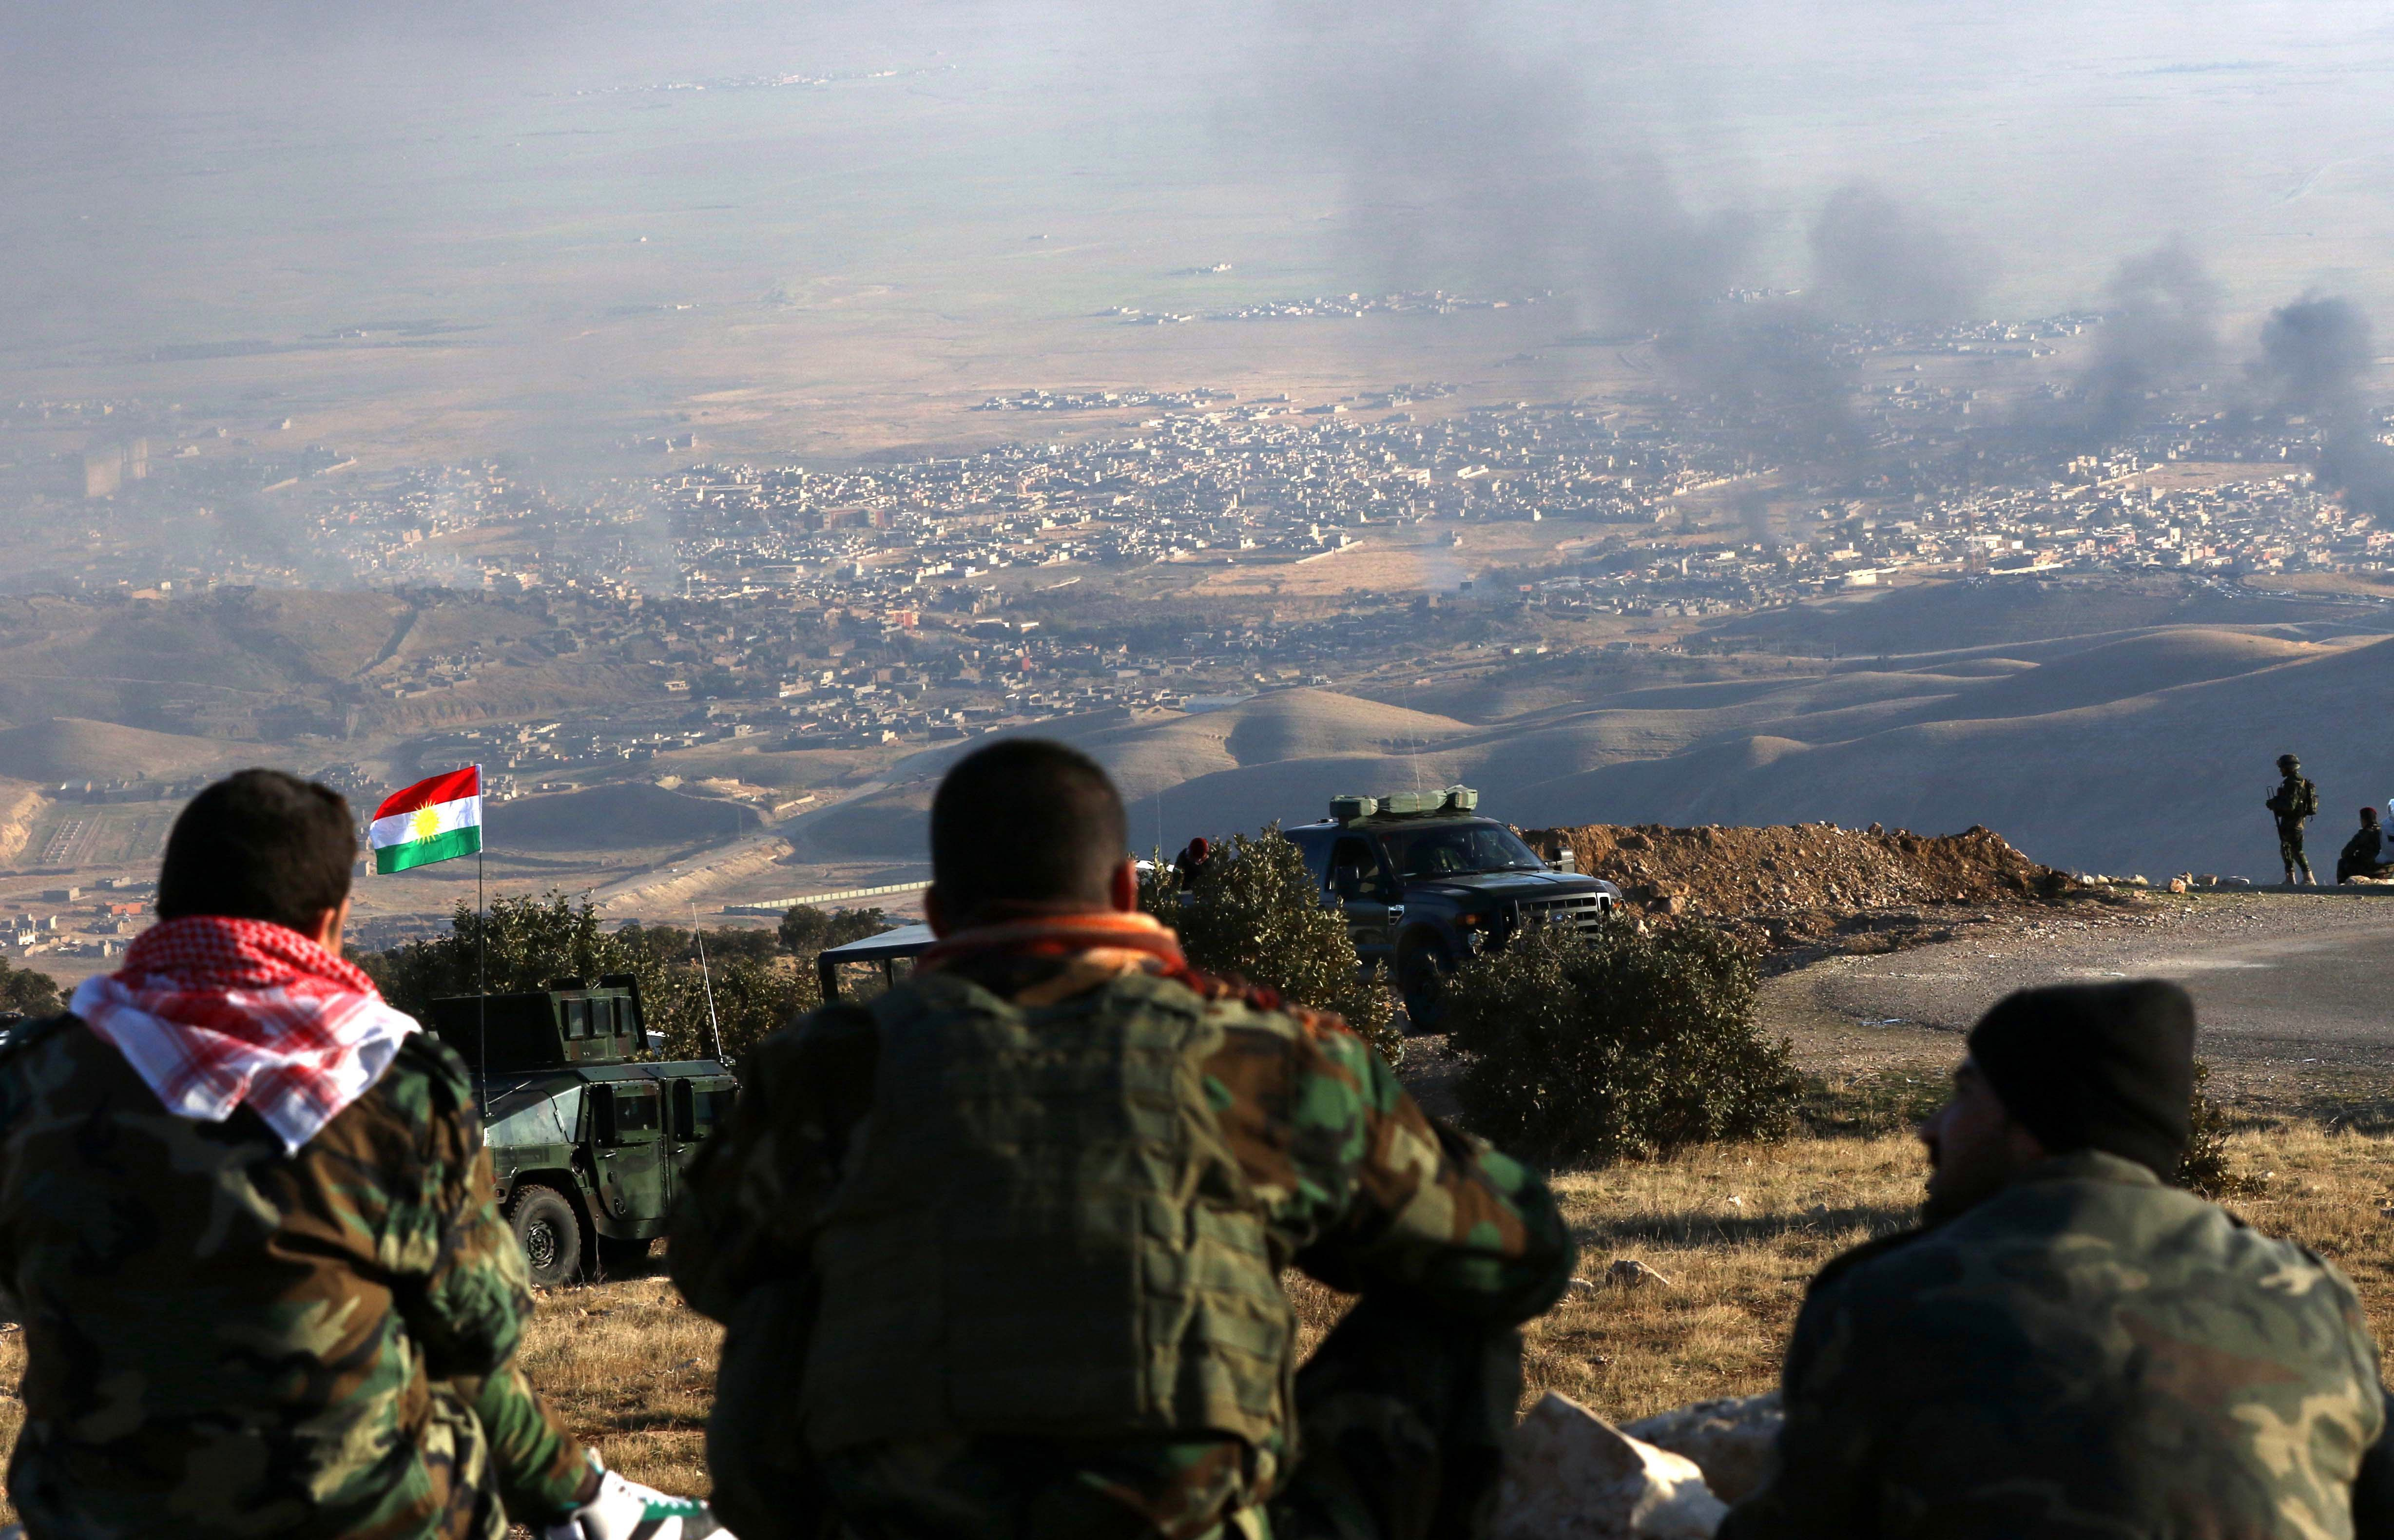 Kurdish fighters look on as smoke billows from Sinjar, in northern Iraq, during an operation, backed by U.S.-led strikes, against the Islamic State group on Thursday. Safin Hamed/AFP/Getty Images